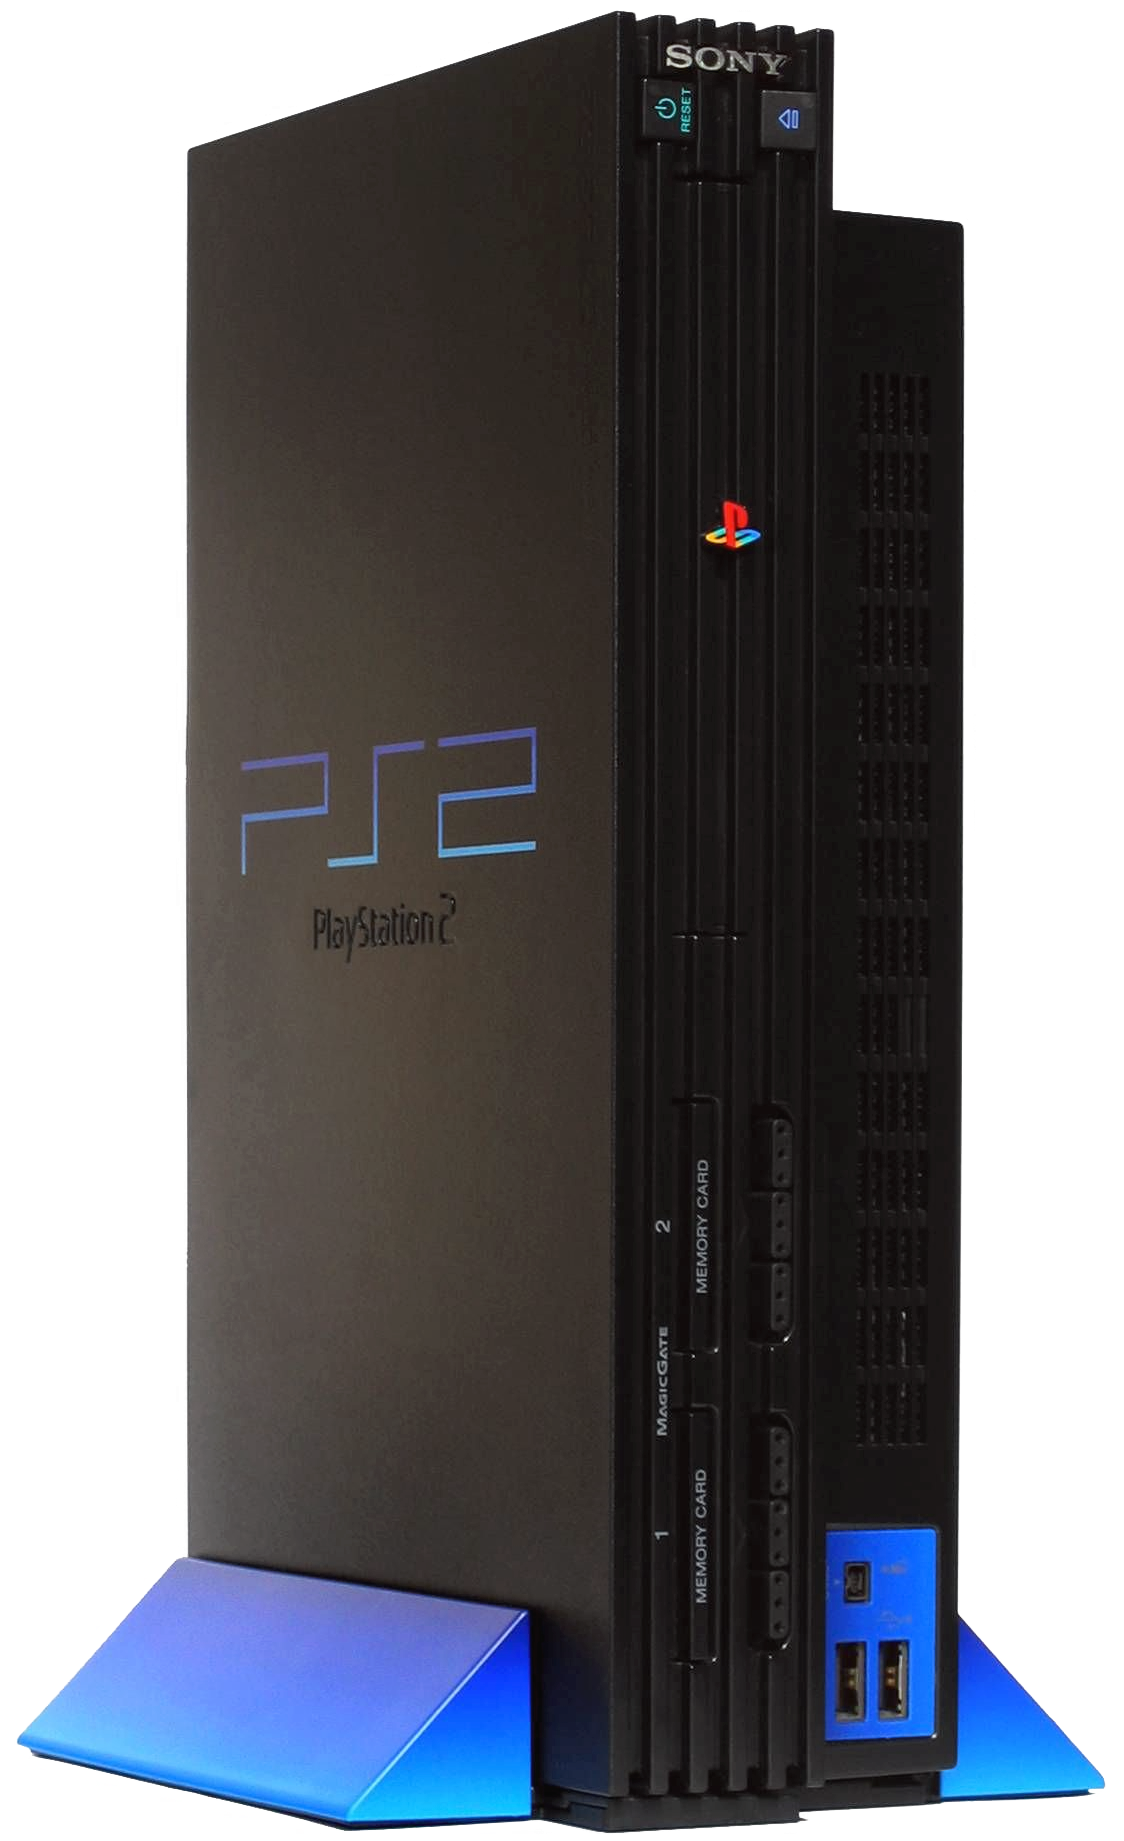 Playstation 2 png. File wikimedia commons fileplaystation